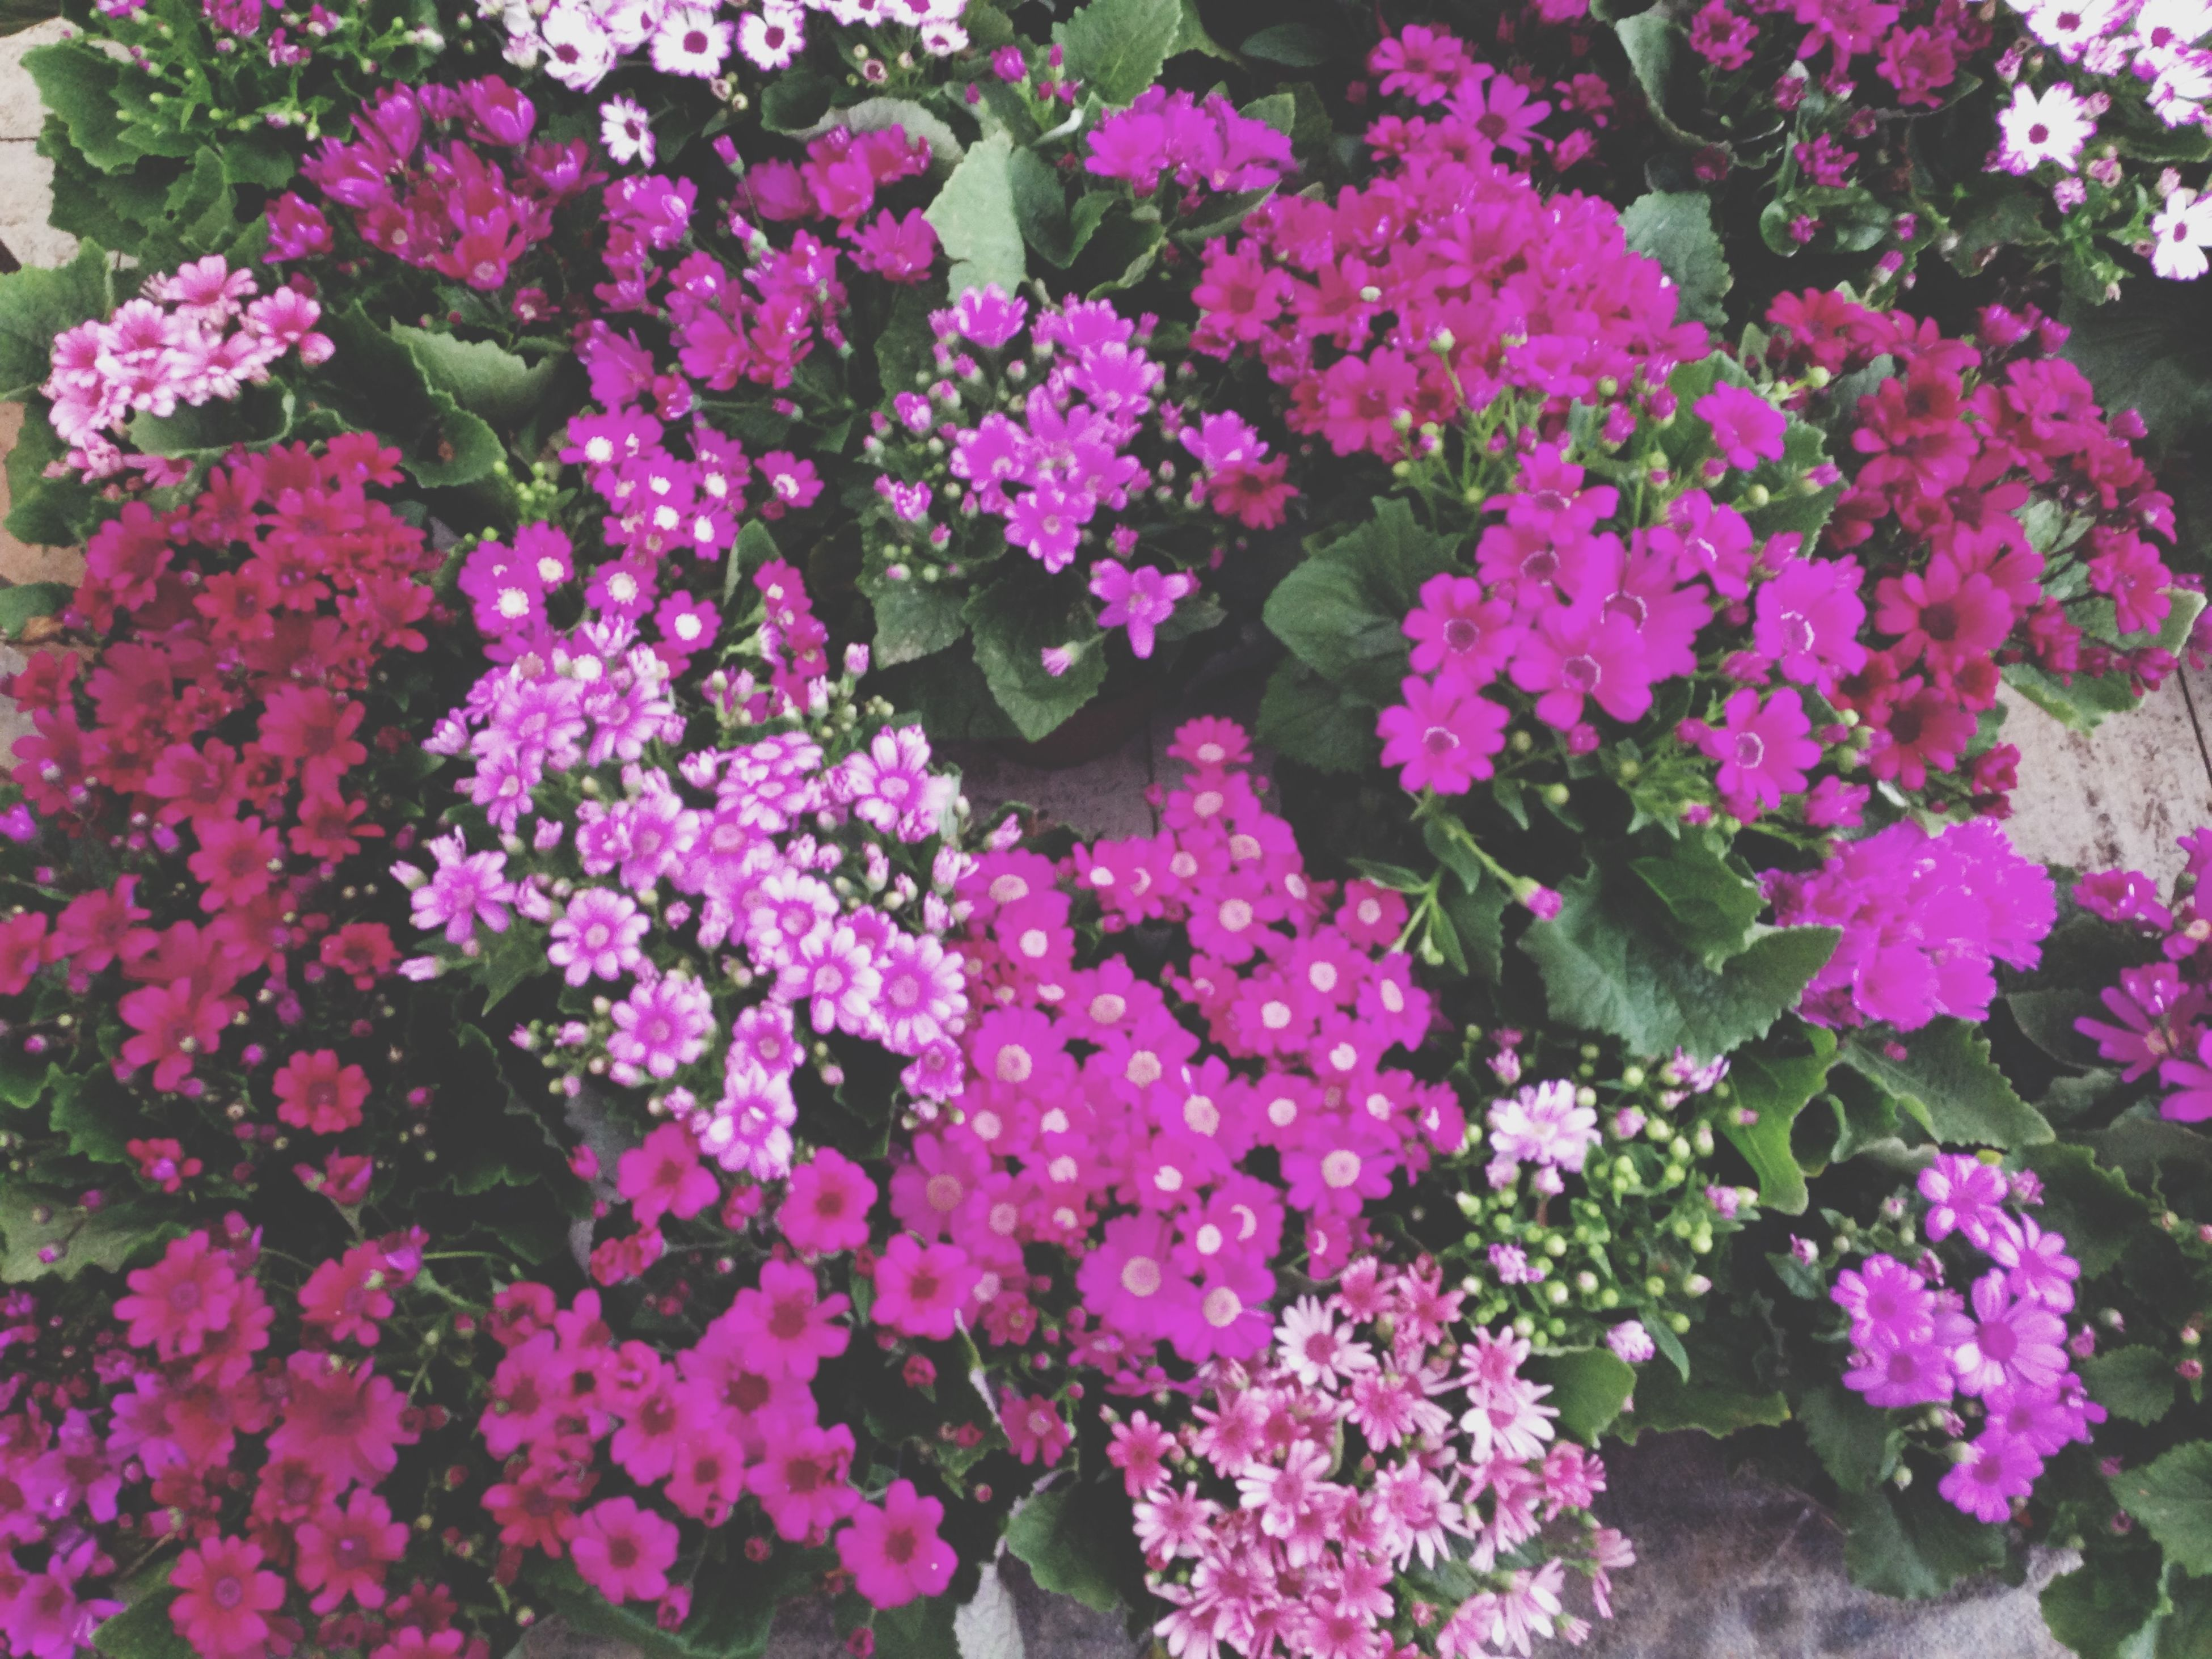 flower, freshness, fragility, petal, growth, beauty in nature, pink color, blooming, nature, plant, flower head, high angle view, in bloom, purple, park - man made space, abundance, outdoors, blossom, day, no people